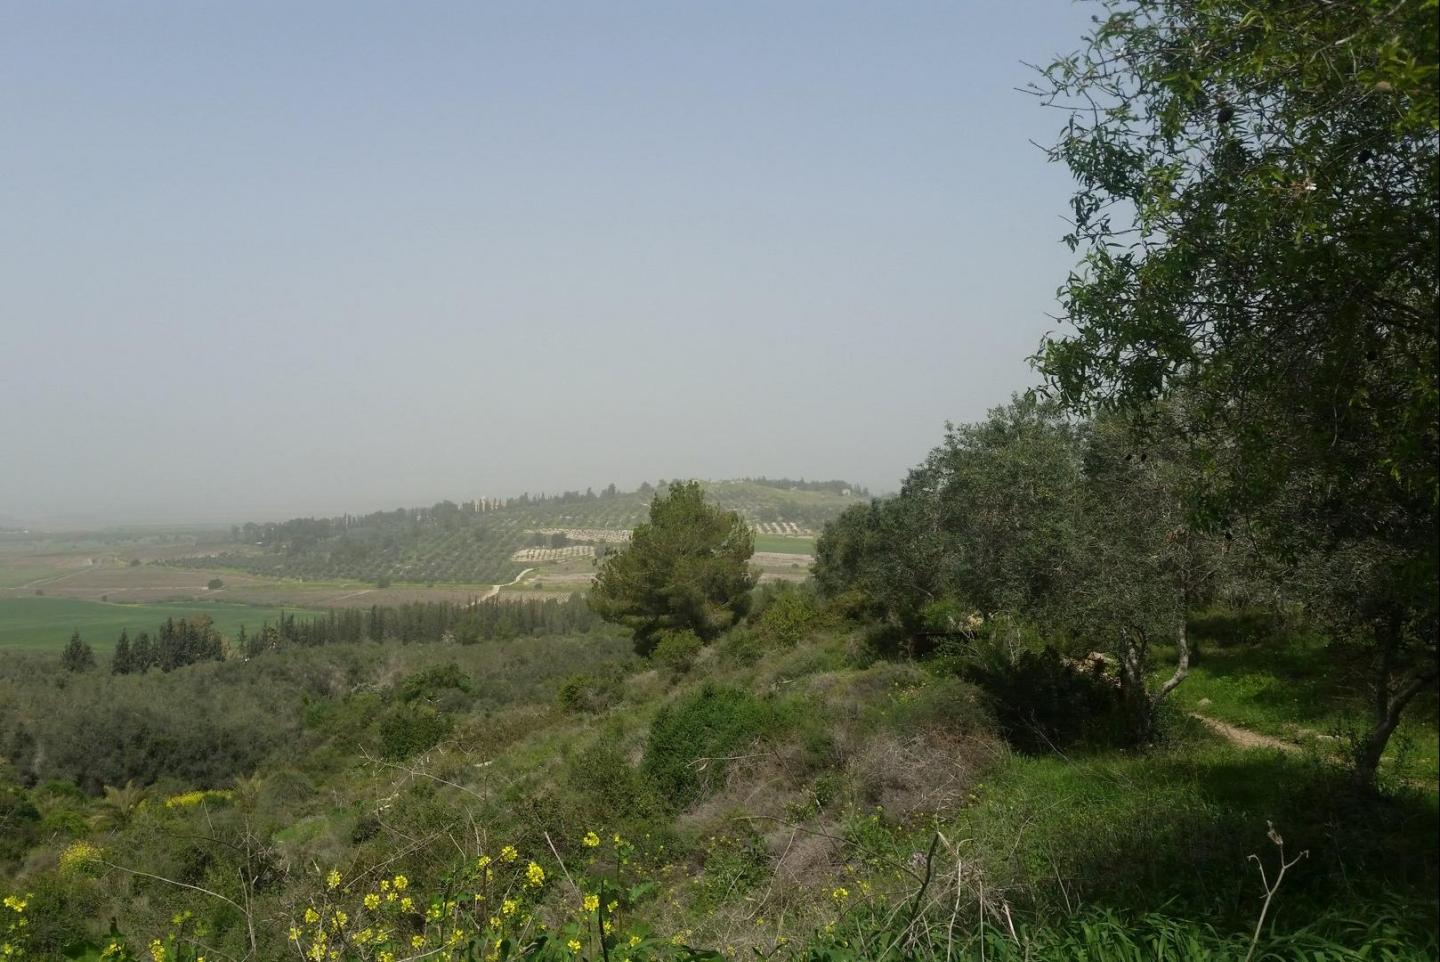 View from the hill of Neve Shalom - Wahat Al-Salam